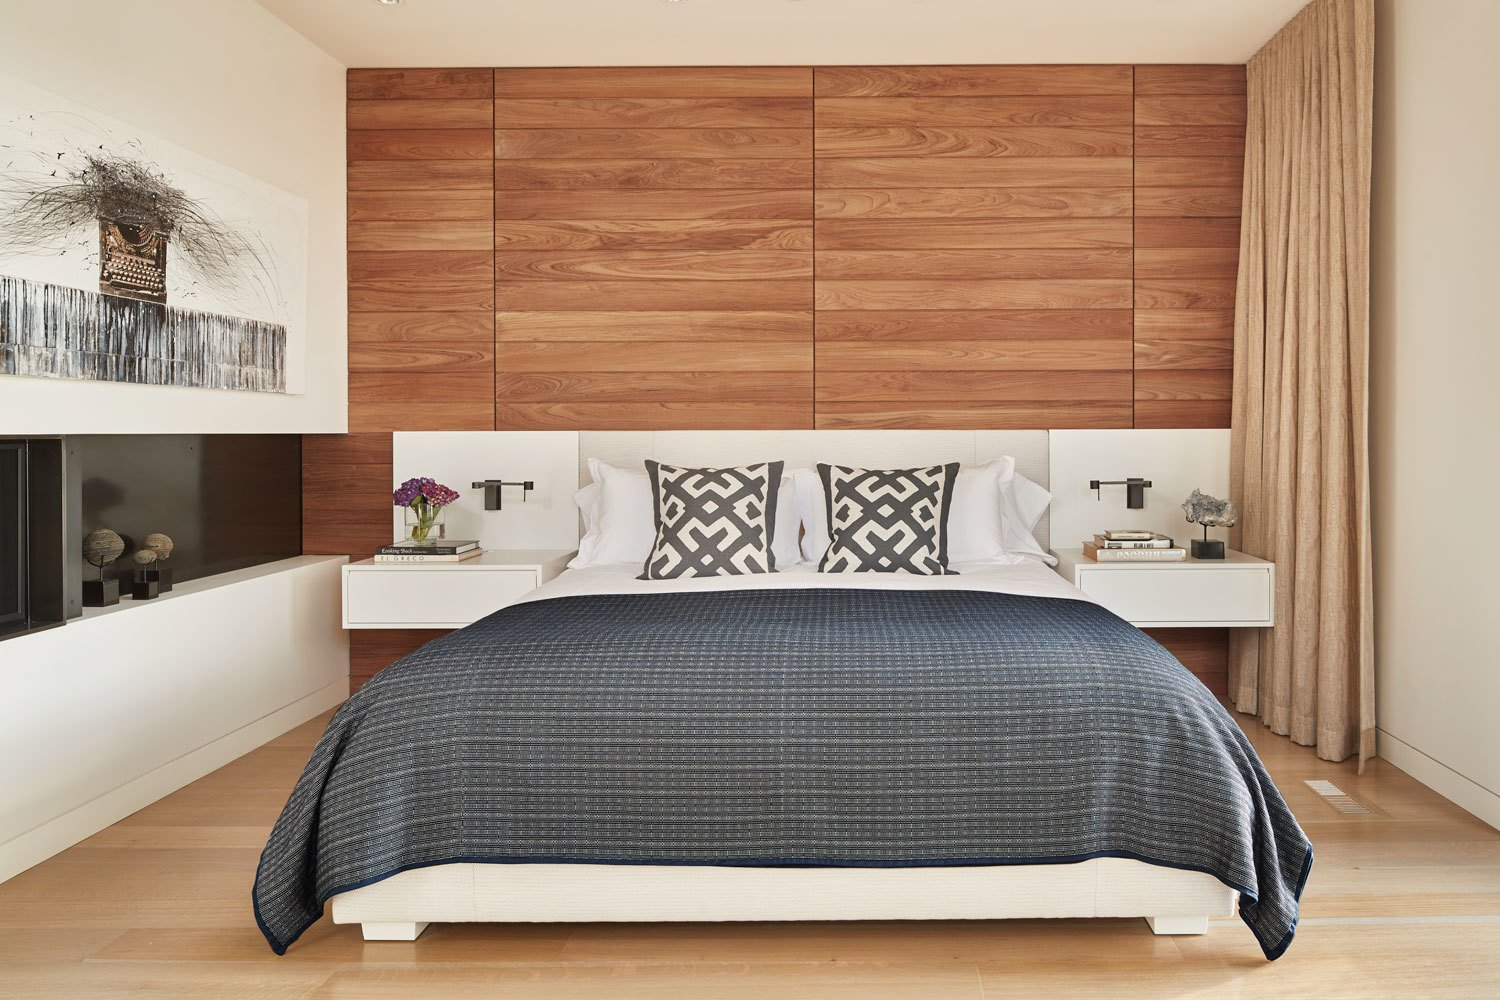 Bedroom, Bed, Wall Lighting, and Light Hardwood Floor The master bedroom features a wall of teak paneling  Union Bay Residence by NB Design Group